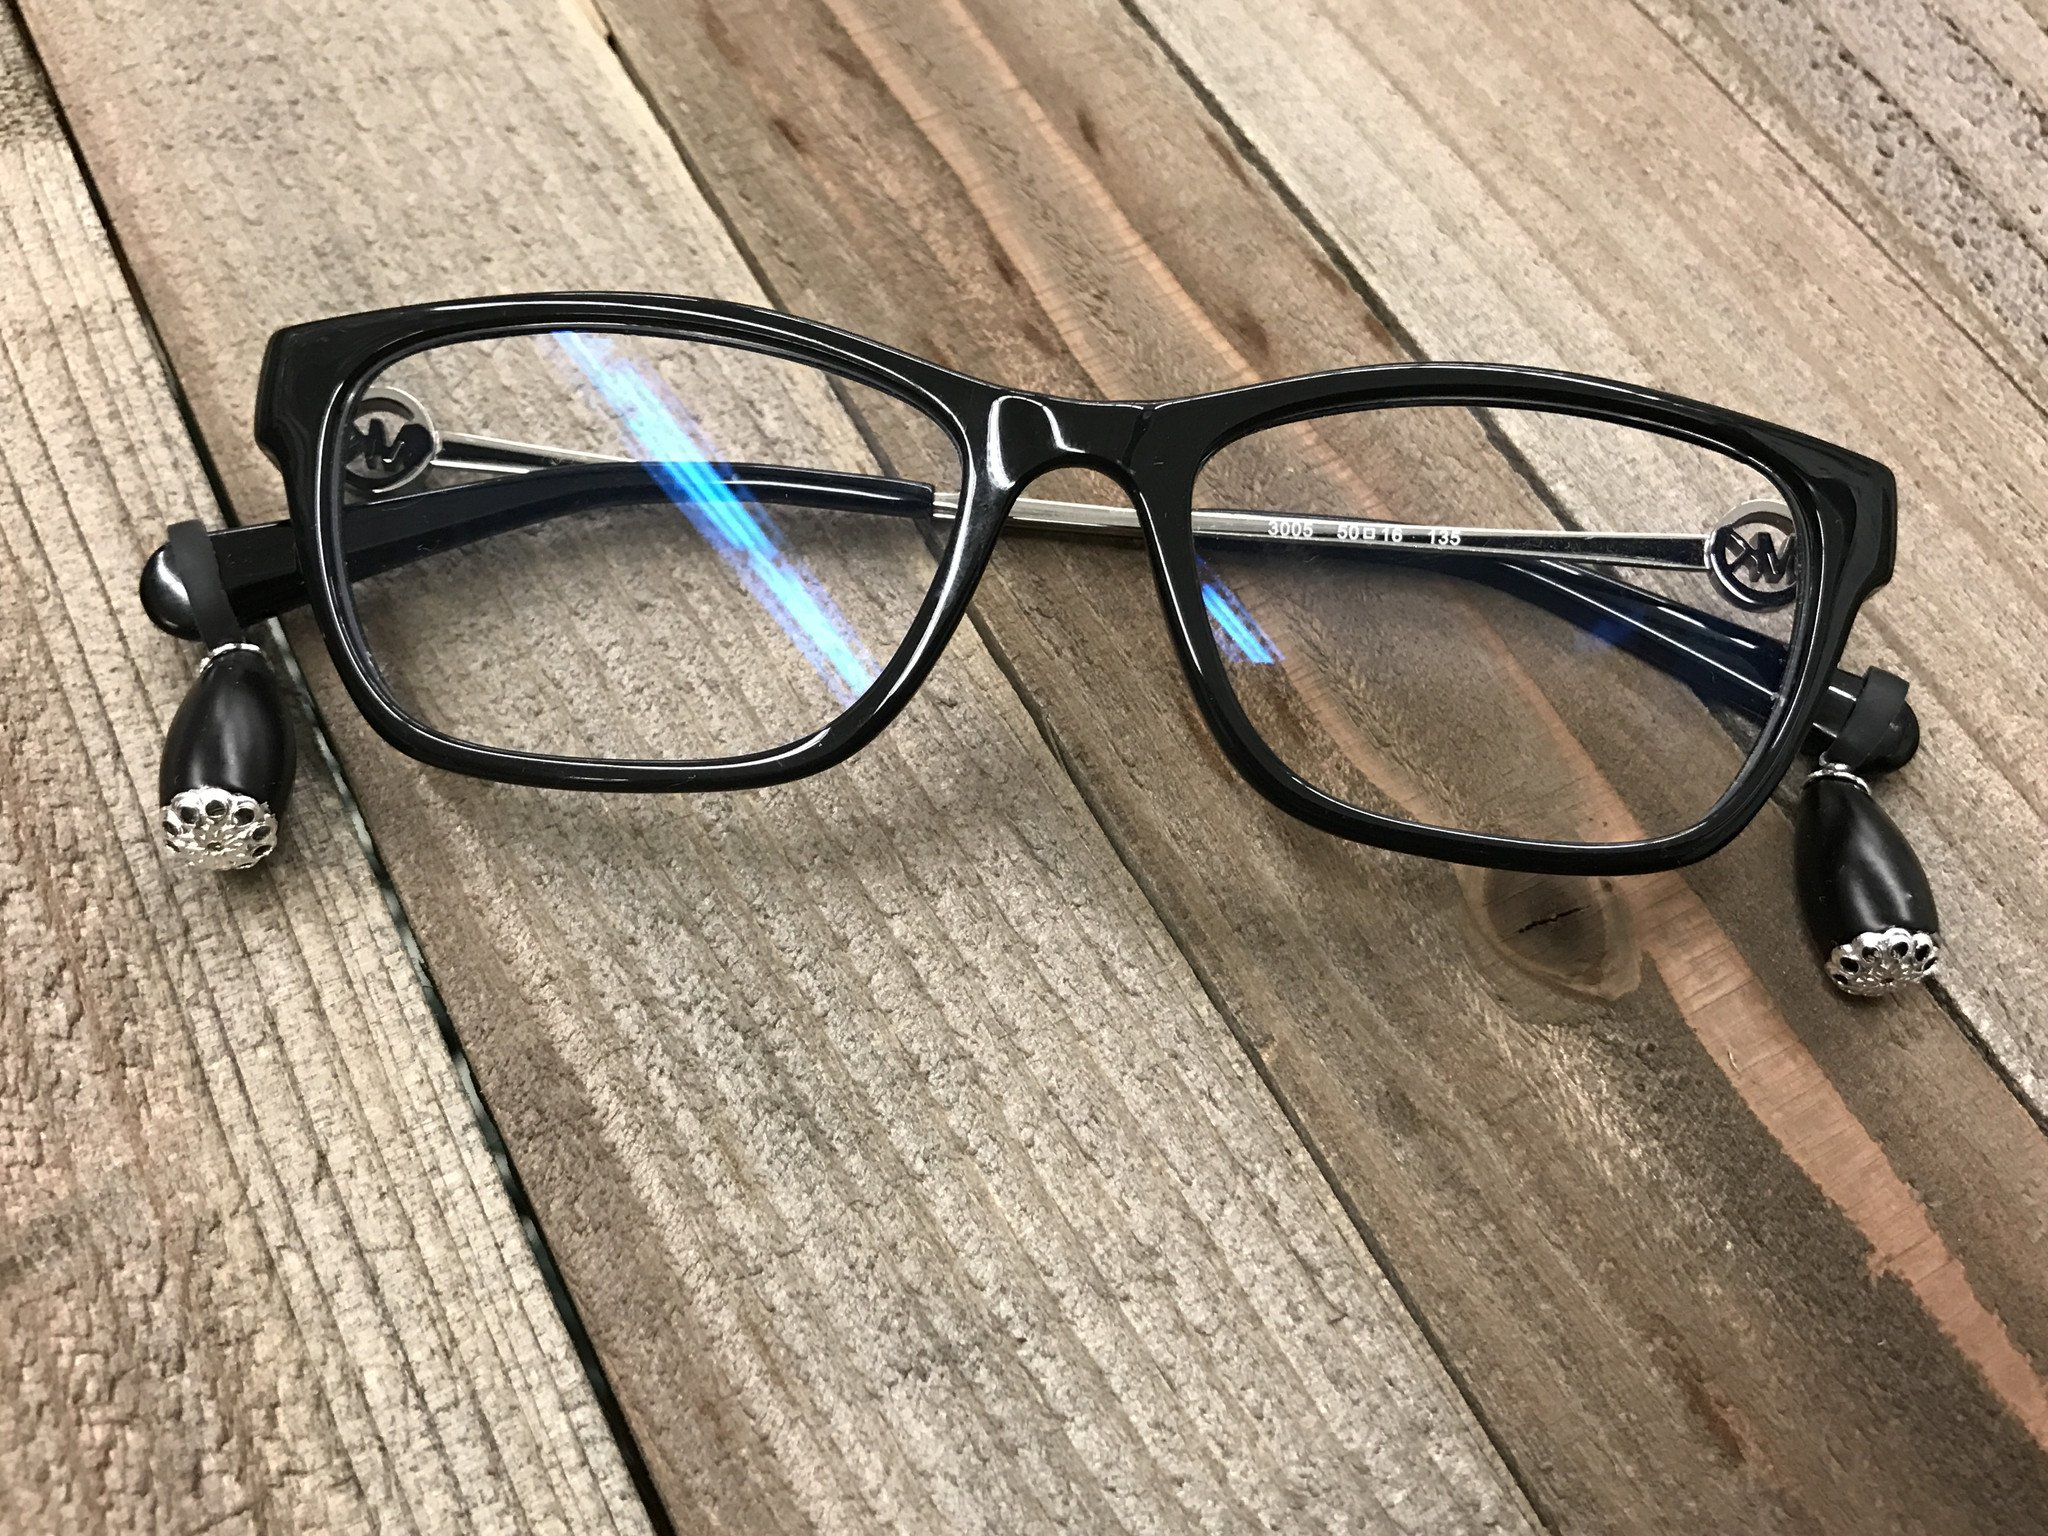 Eyeglasses Hurt? Lifts Glasses Off Nose! Two Pairs Of Eyeglass Accessories PLUS FREE Ear Cushions (Prevents Nose Dents & Slipping) Eyeglass Jewelry. Sunglasses Accessories